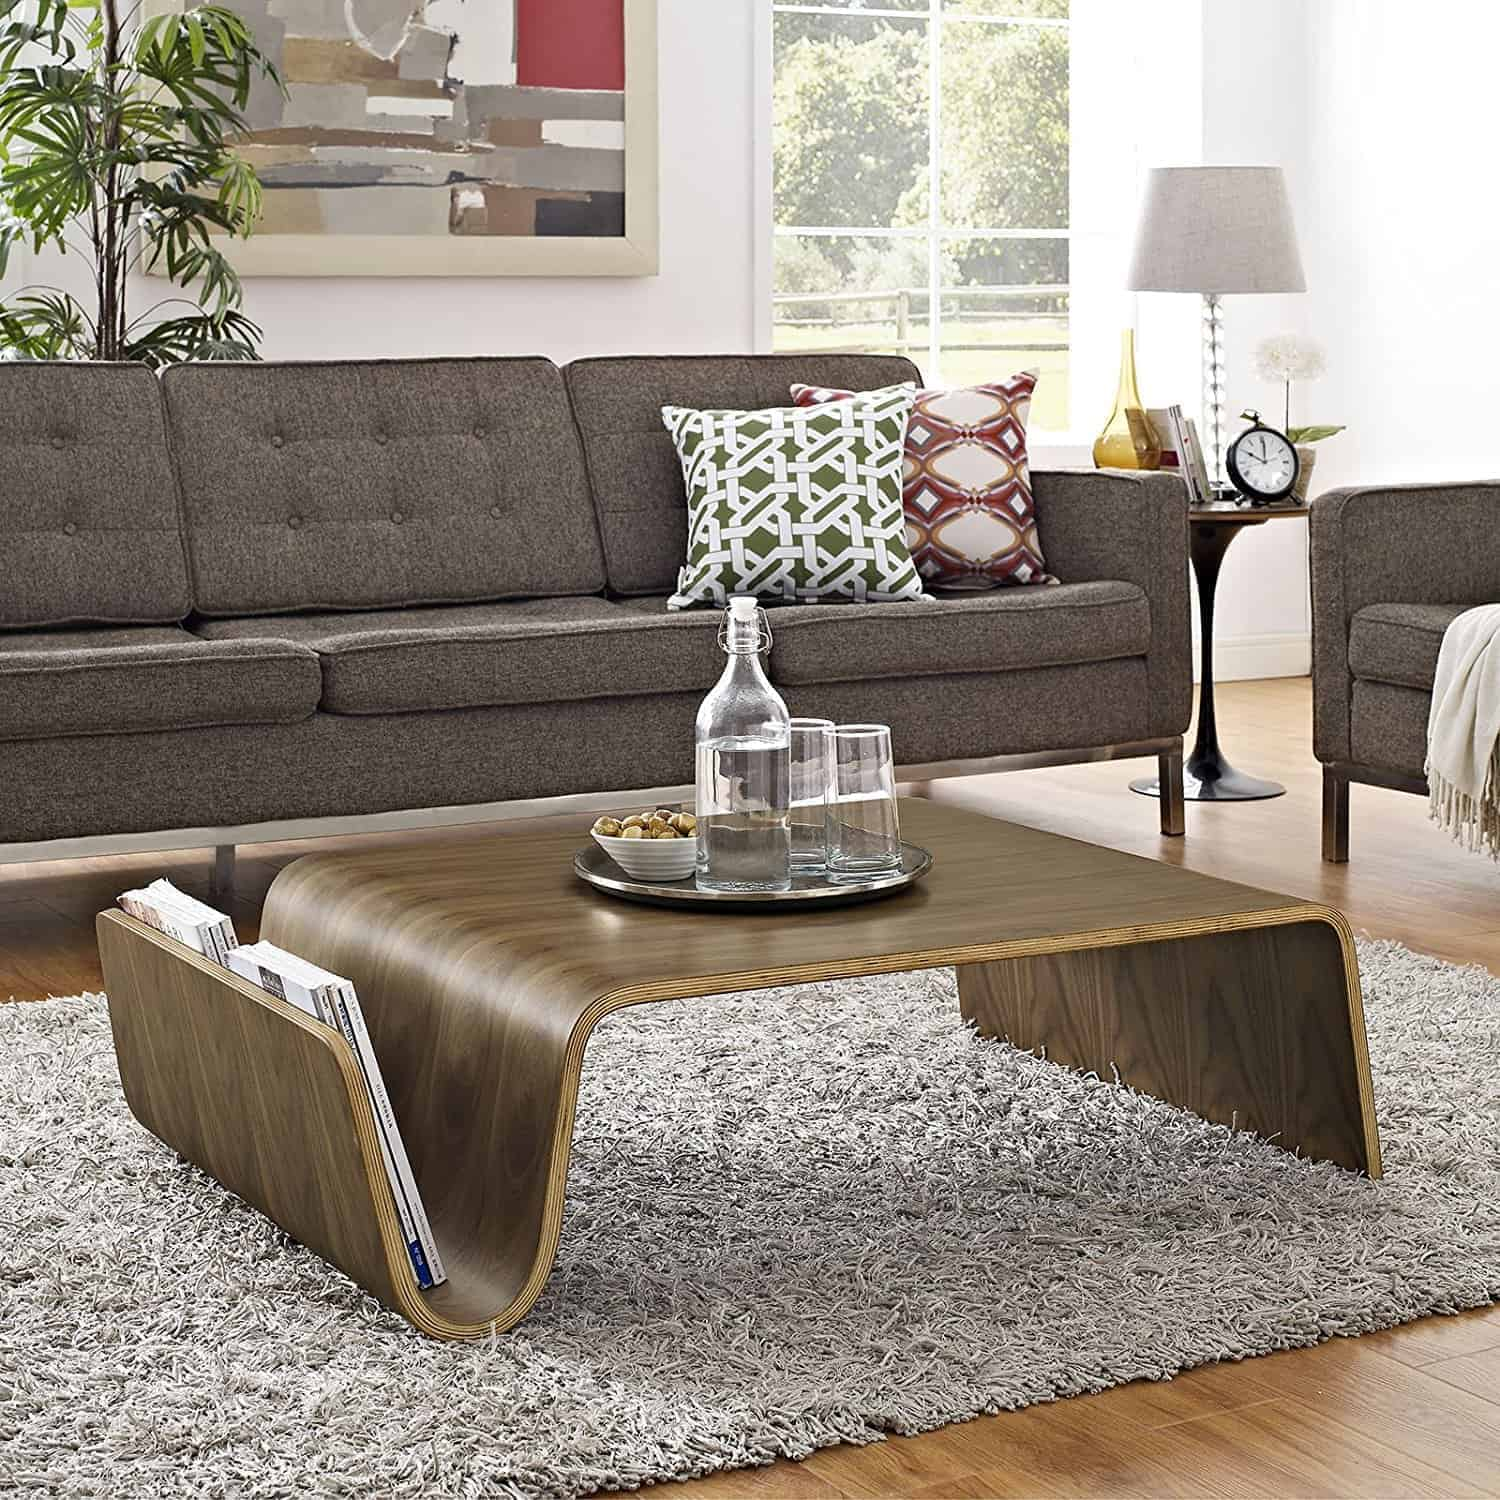 Unique Coffee Tables: Glass, Wood and Metal Coffee Tables Designs